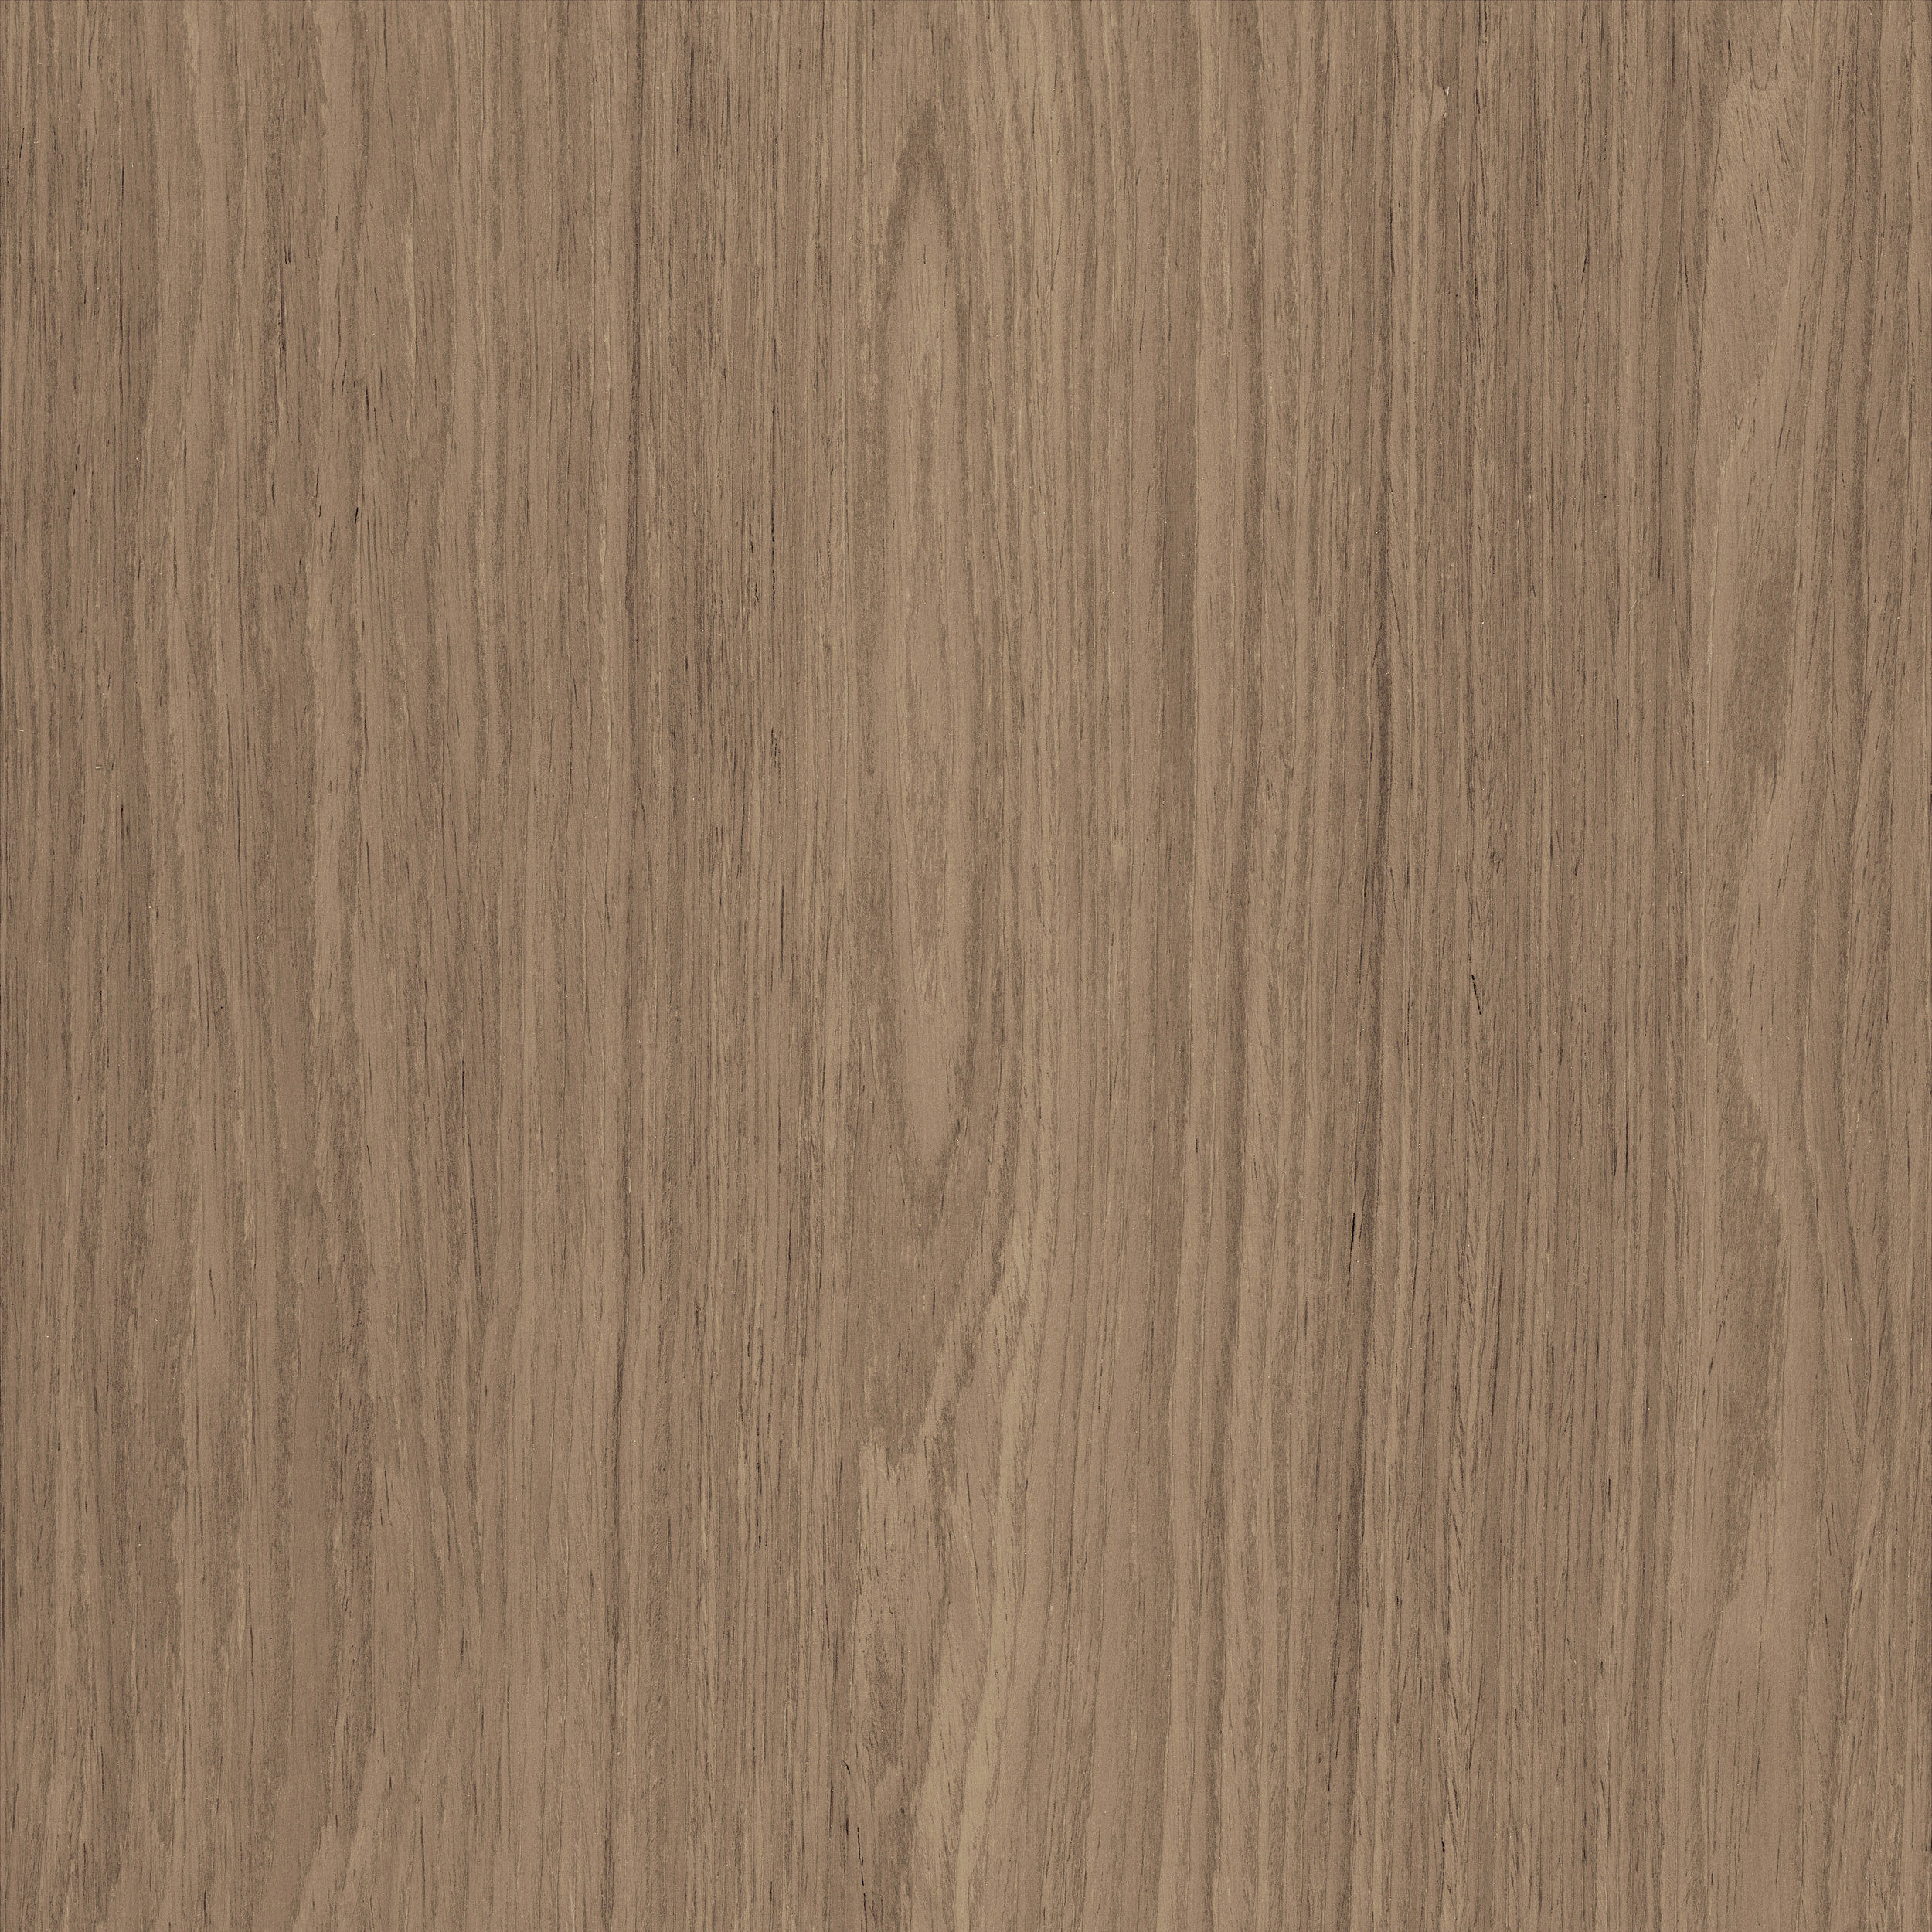 Washed Walnut Groove